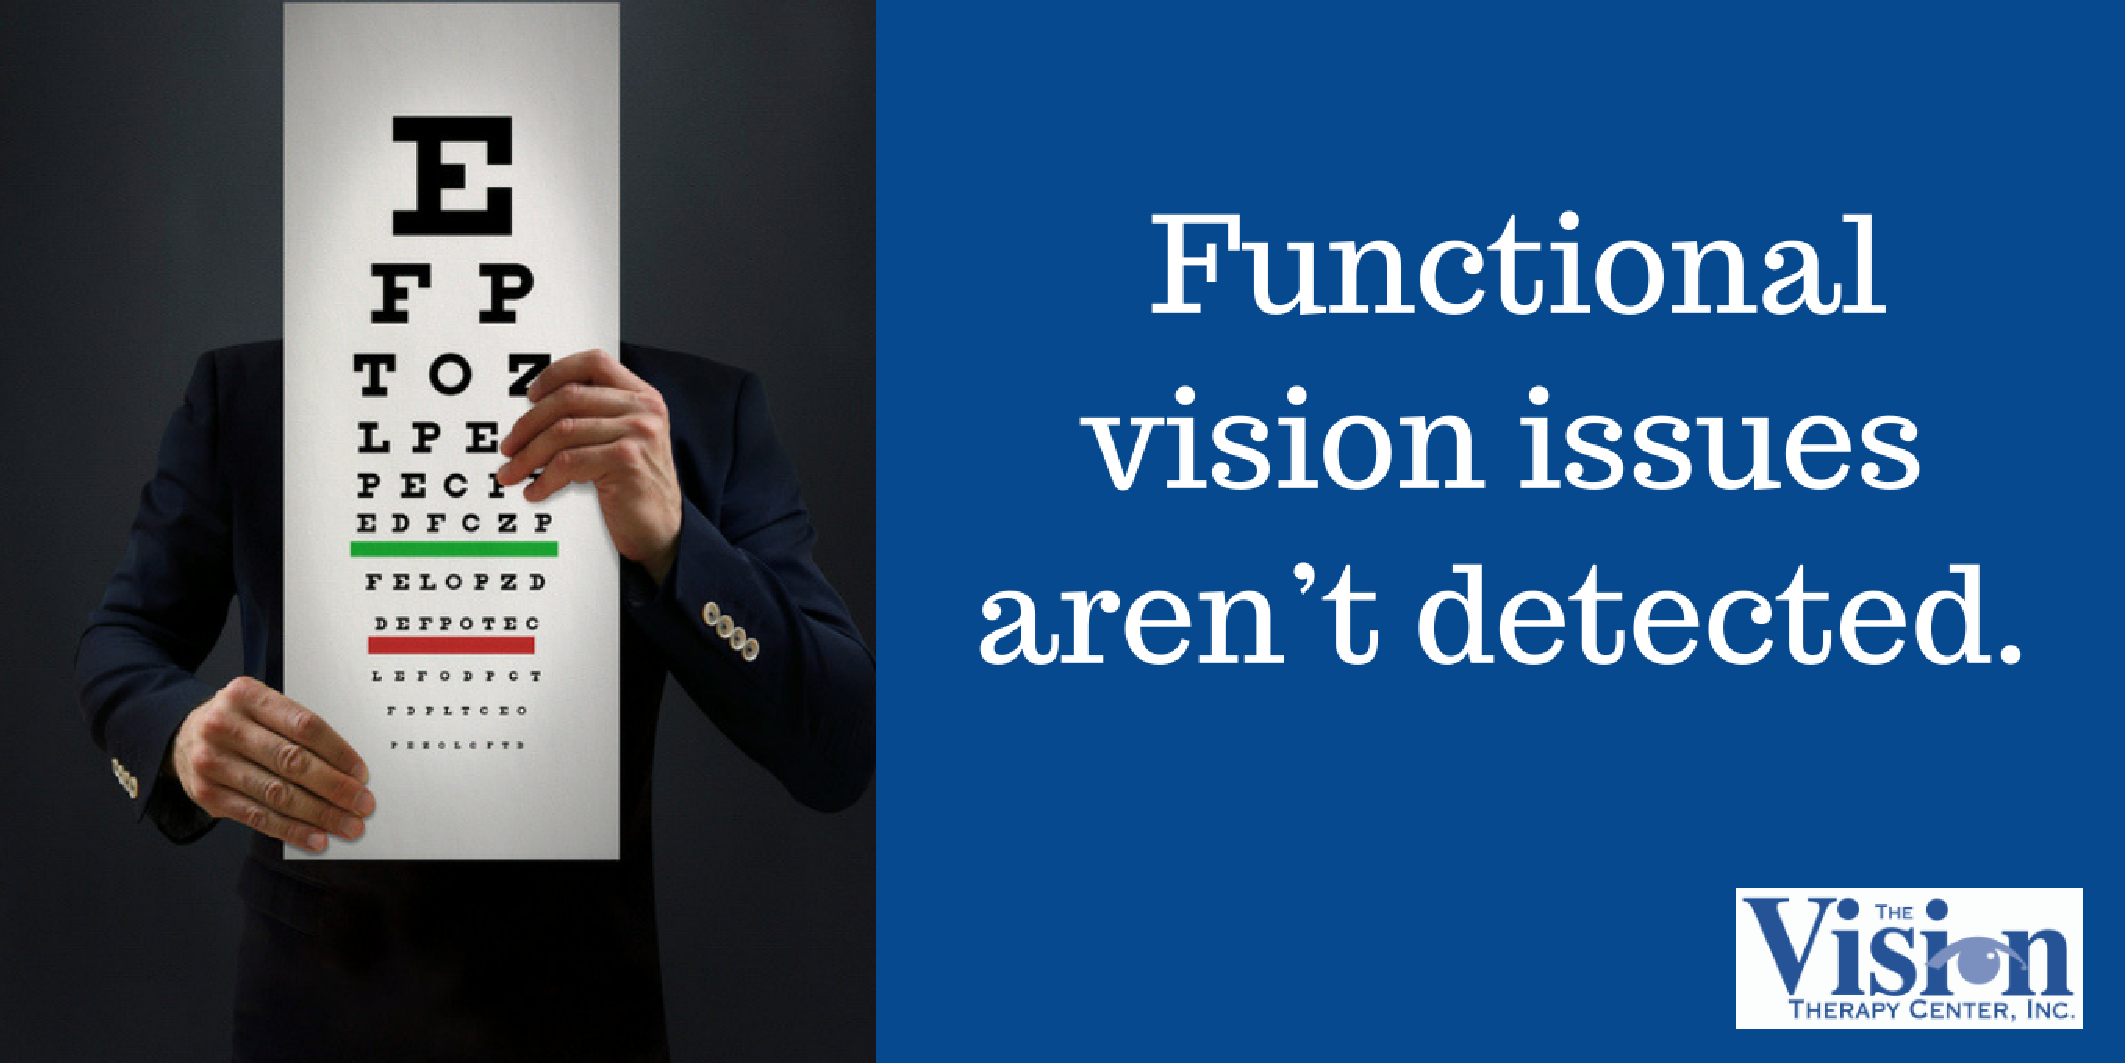 Functional vision issues aren't detected.